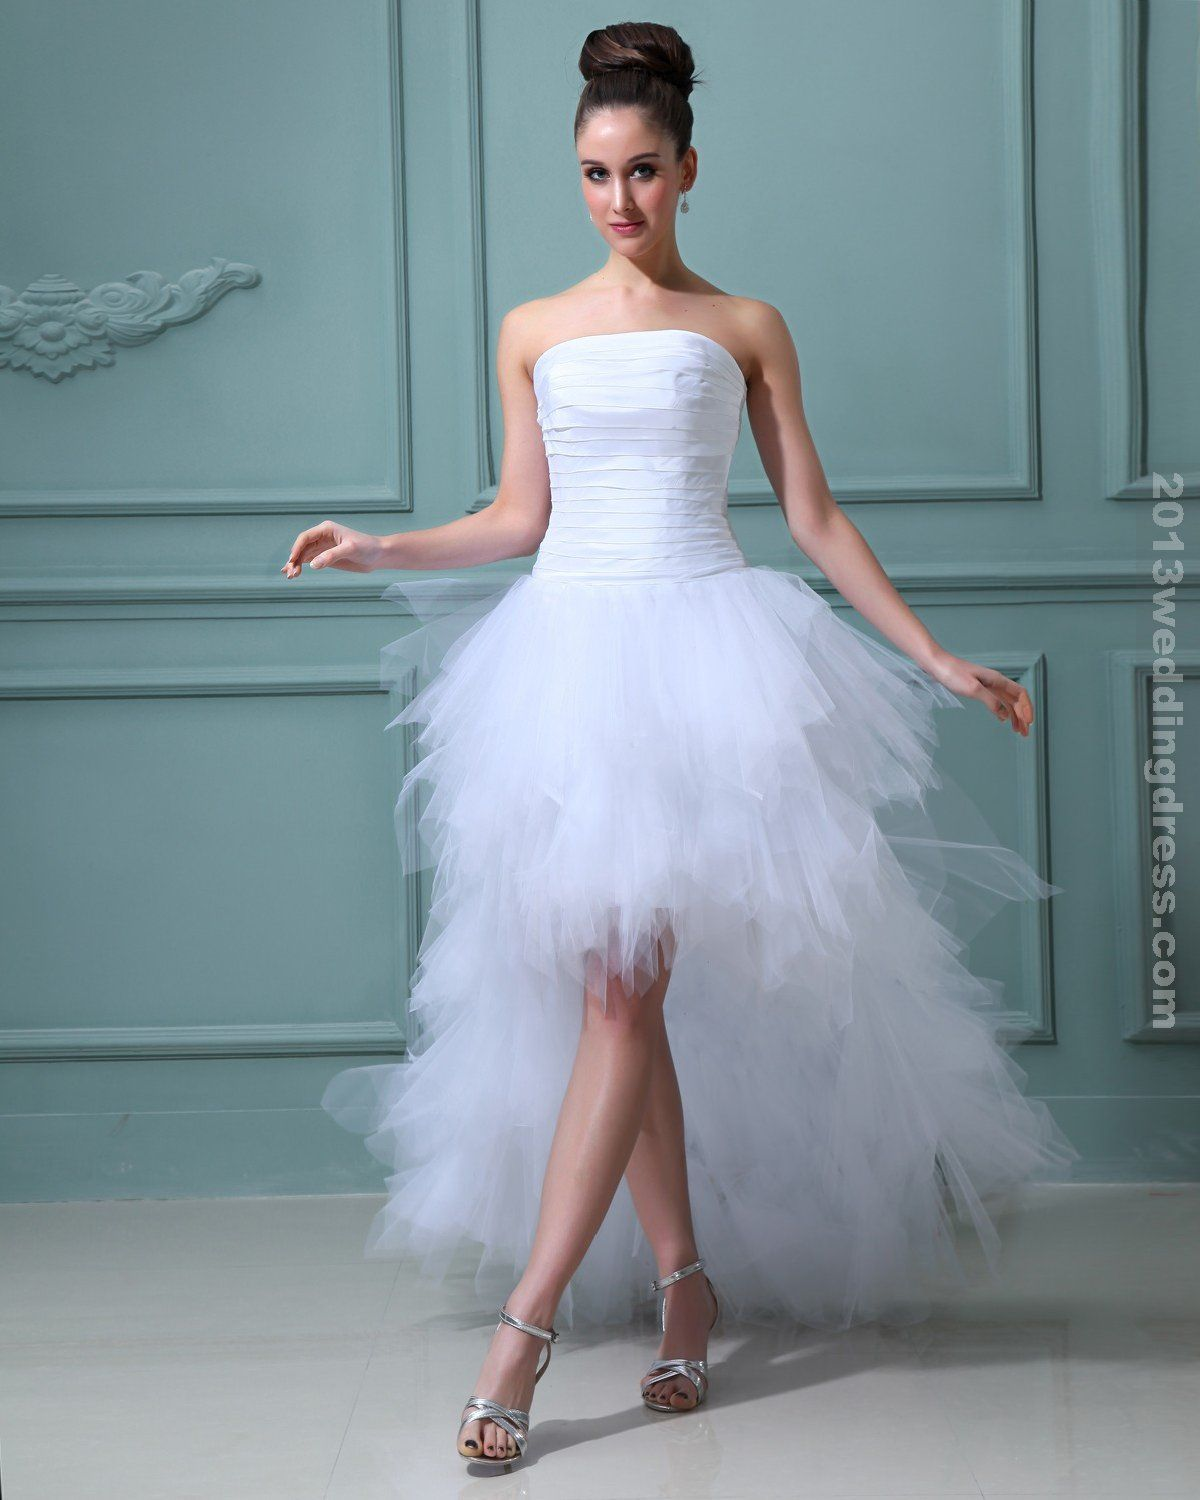 Short beach wedding dresses great elegant ruffles yarn strapless